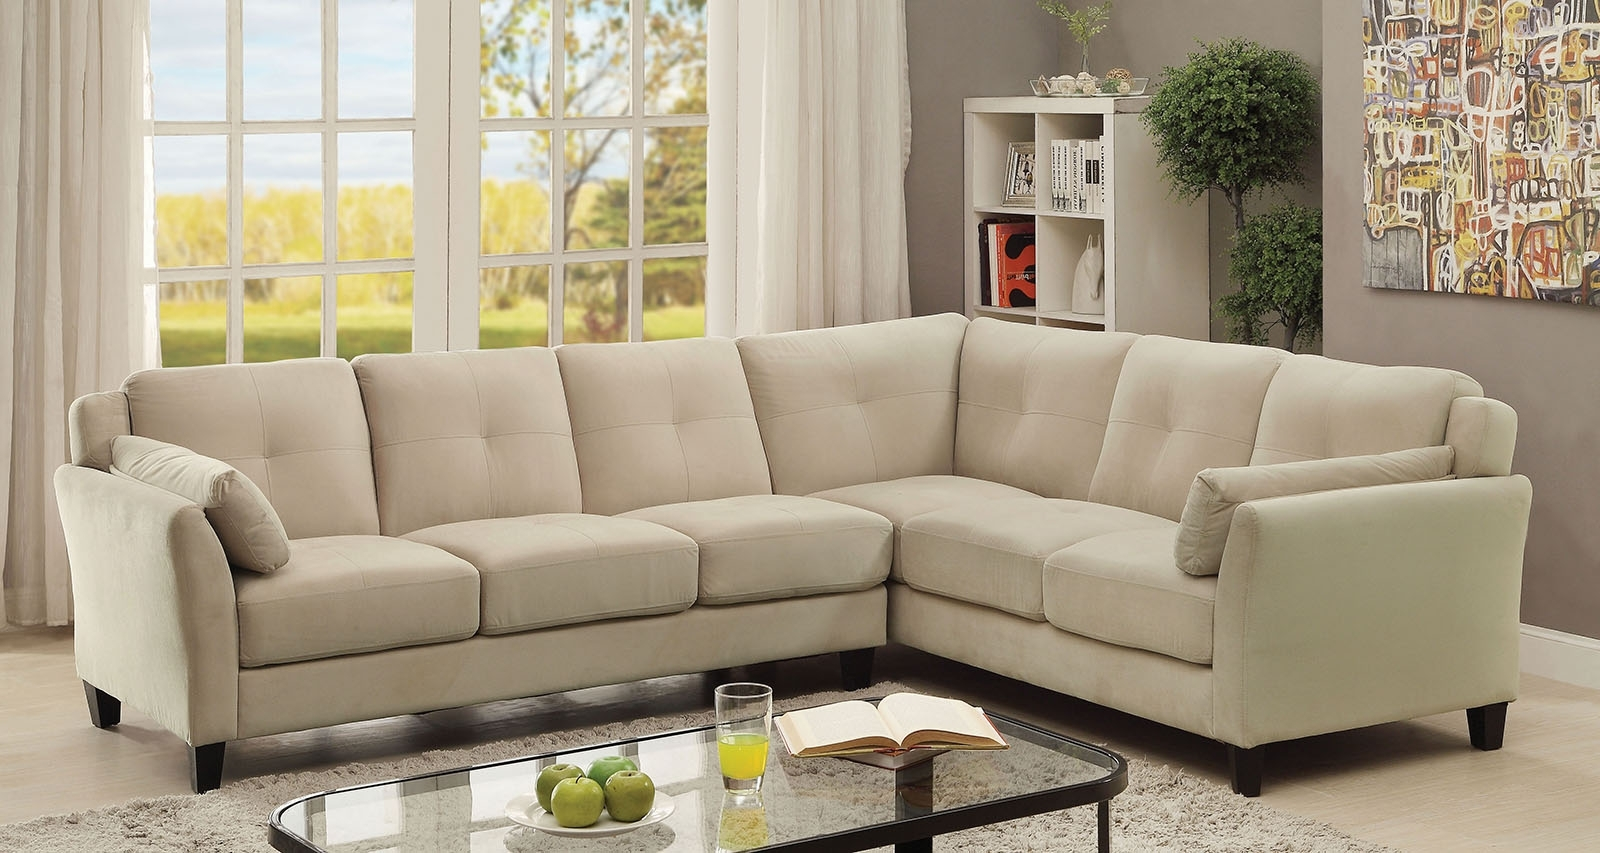 Andrew's Furniture And Mattress In Beige Sectional Sofas (View 3 of 15)